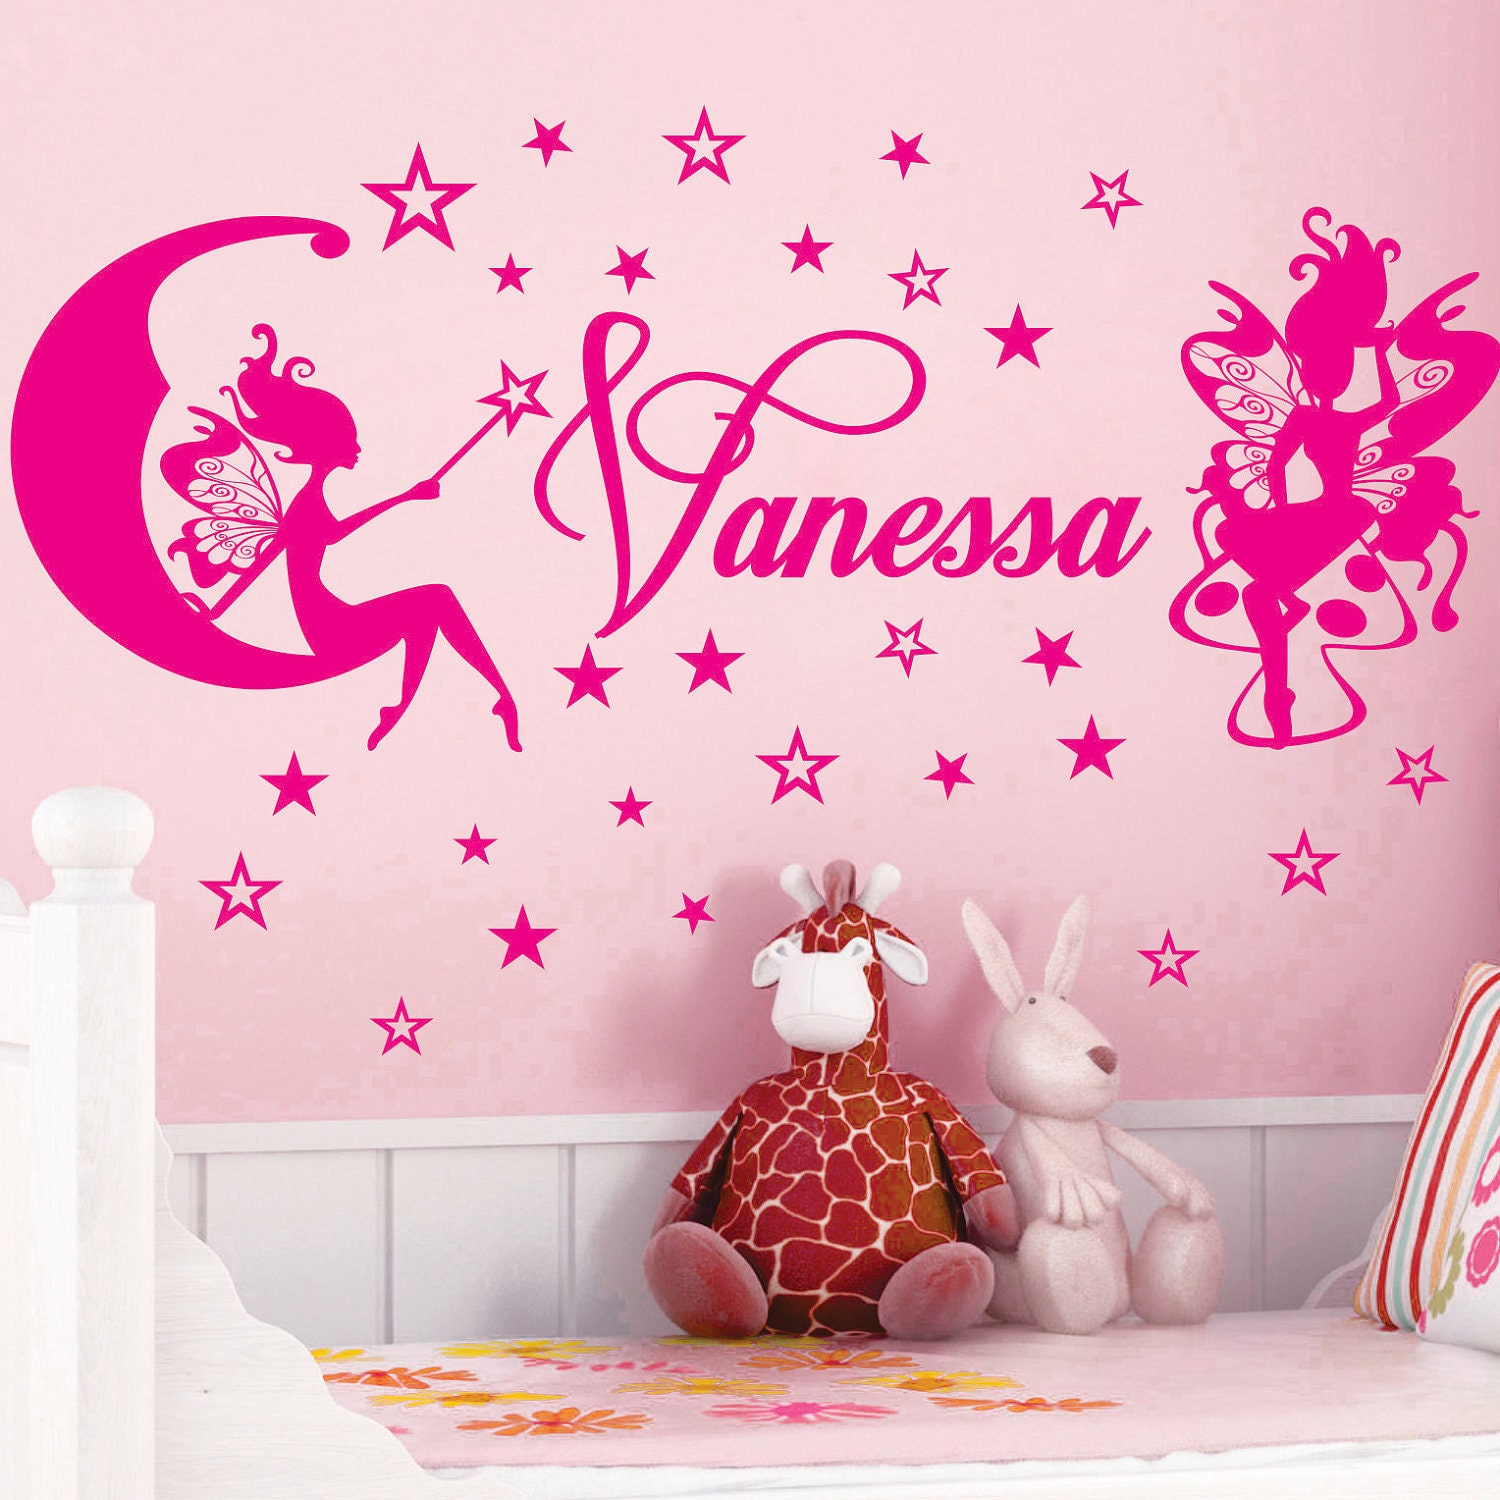 fairy stars name personal vinyl wall decals saying quote art